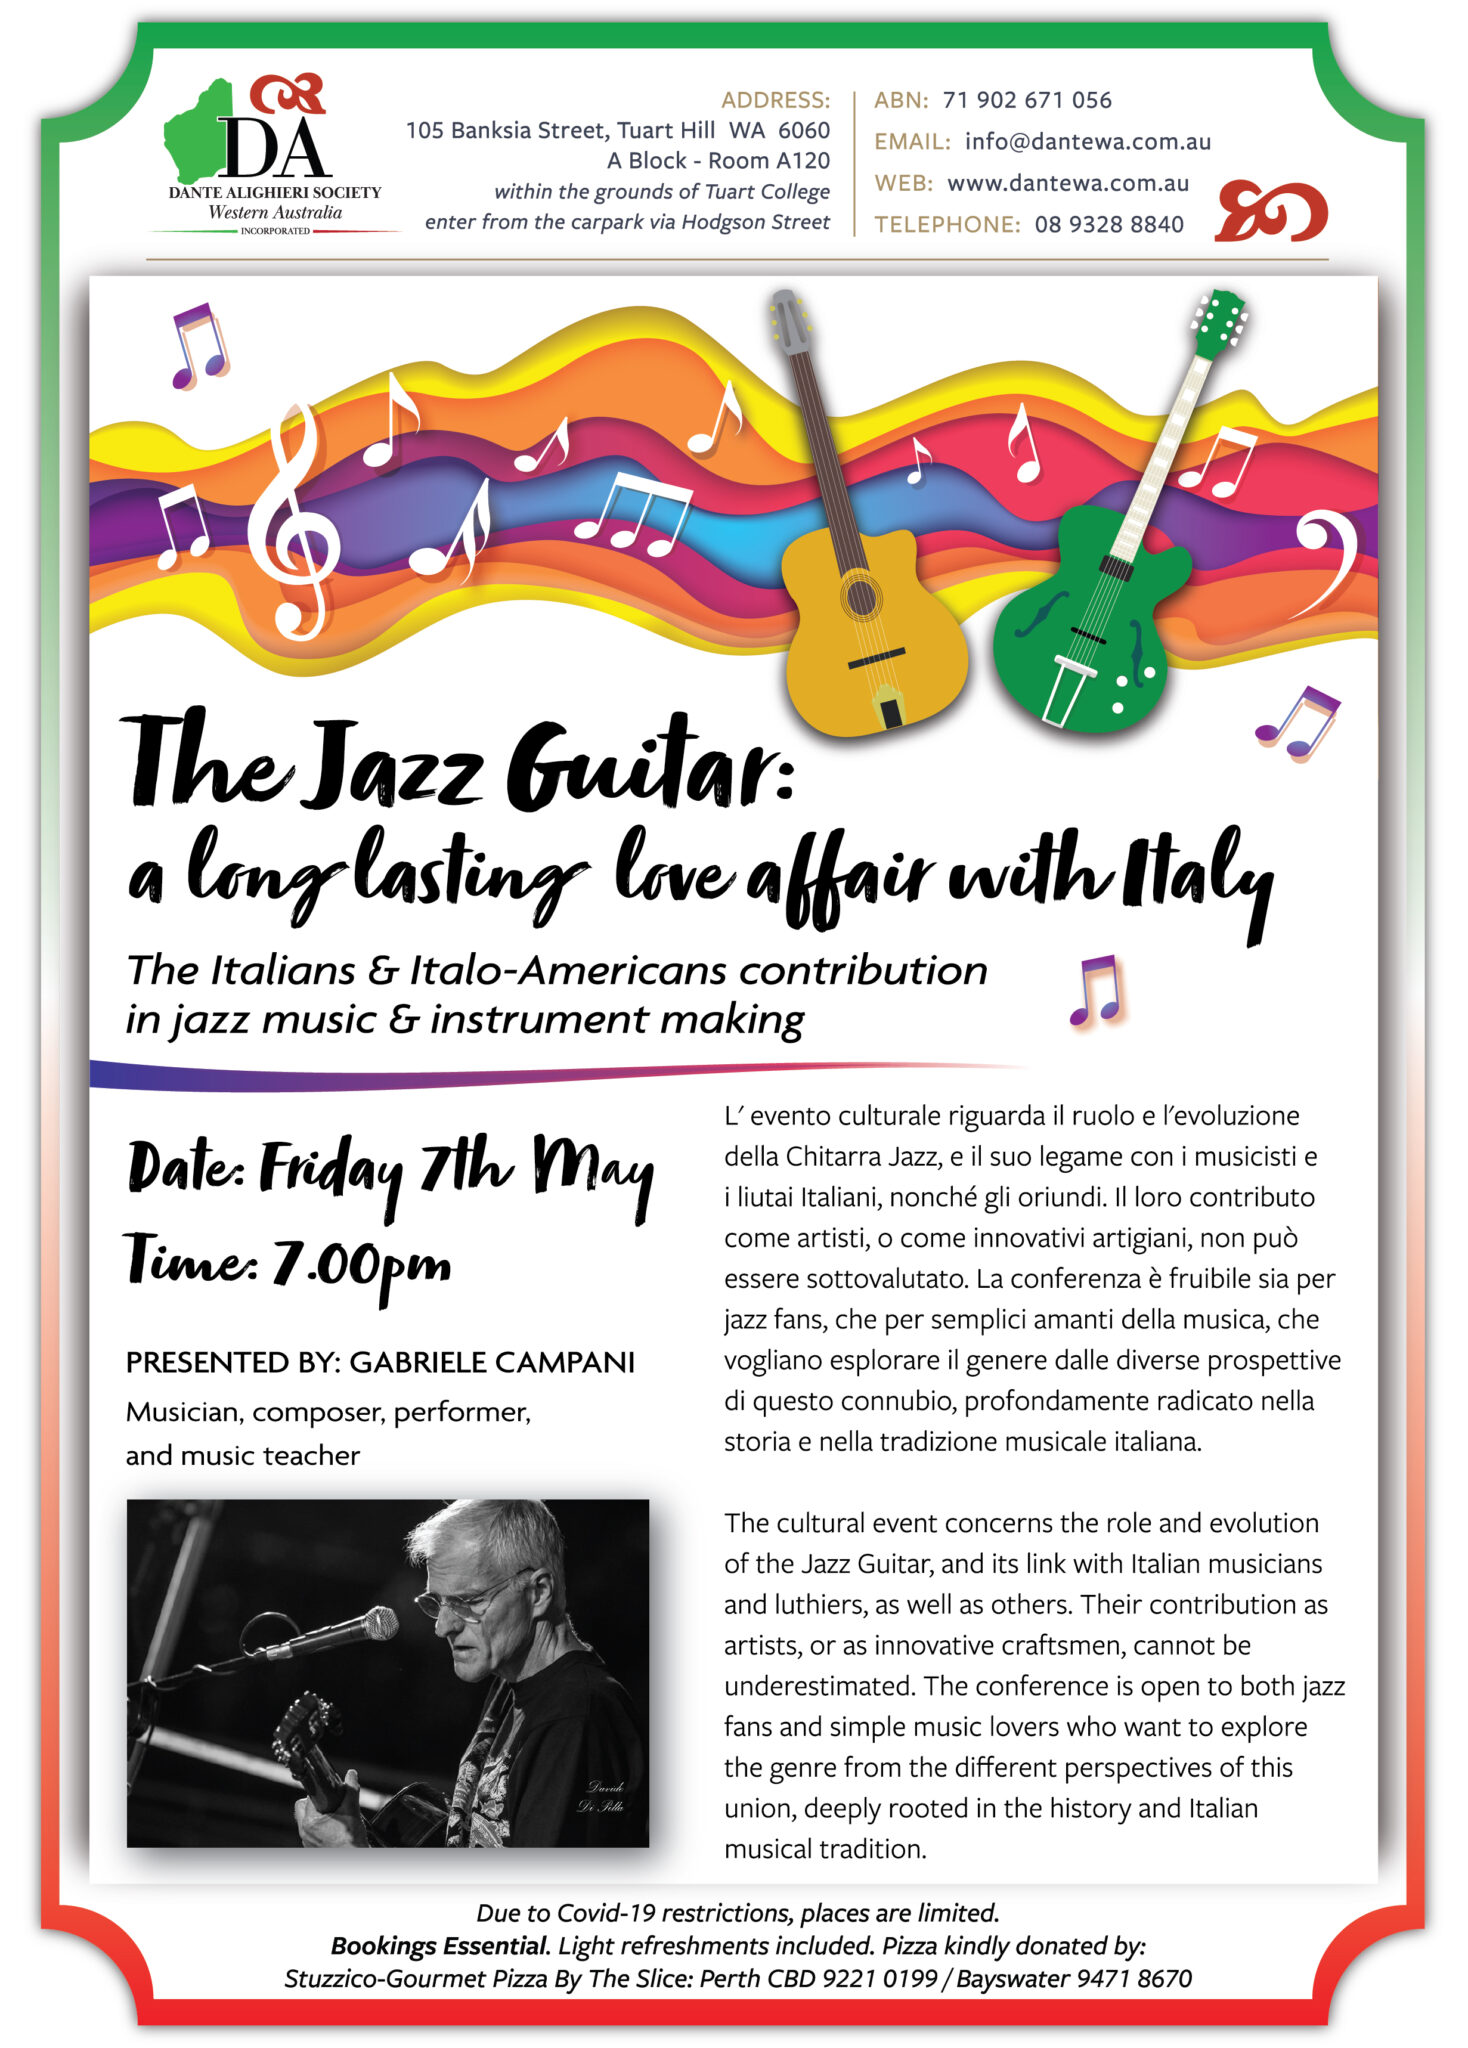 ATTENTION: April Cultural Night Rescheduled to Friday 7th May